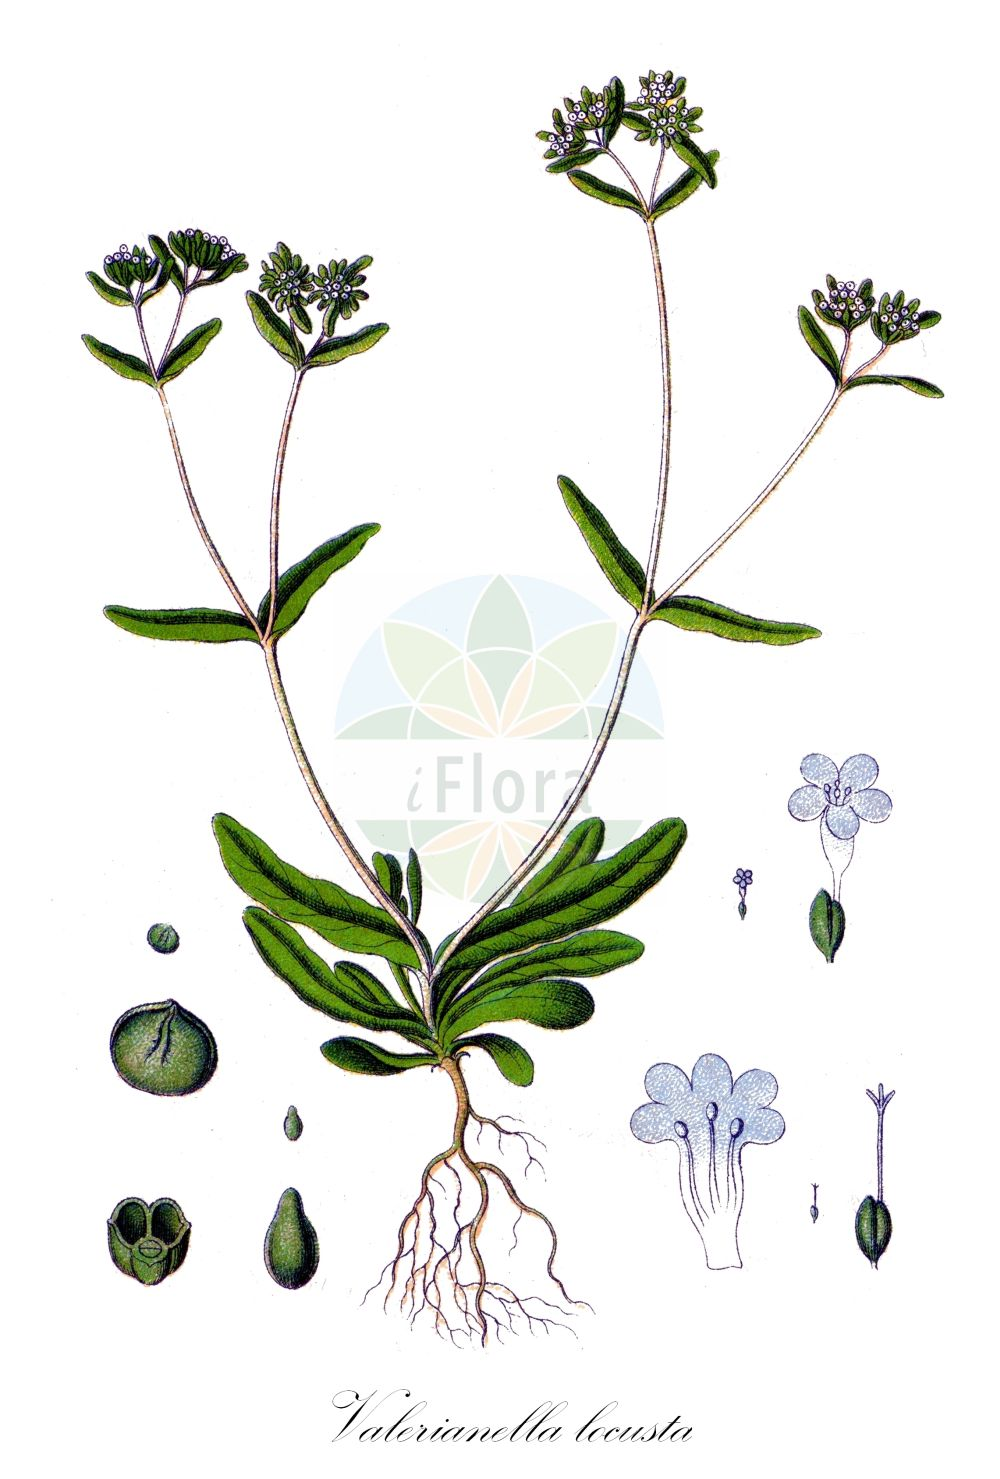 Historische Abbildung von Valerianella locusta (Gewoehnlicher Feldsalat - Common Cornsalad). Das Bild zeigt Blatt, Bluete, Frucht und Same. ---- Historical Drawing of Valerianella locusta (Gewoehnlicher Feldsalat - Common Cornsalad).The image is showing leaf, flower, fruit and seed.(Valerianella locusta,Gewoehnlicher Feldsalat,Common Cornsalad,Valeriana locusta,Valerianella olitoria,Ackersalat,Echter Feldsalat,Rapunzel,Sonnenwirbele,Lewiston Cornsalad,European Corn Salad,Cornsalad,Lamb's Lettuce,Valerianella,Rapunzel,Cornsalad,Caprifoliaceae,Geissblattgewaechse,Honeysuckle family,Blatt,Bluete,Frucht,Same,leaf,flower,fruit,seed,Sturm (1796f))